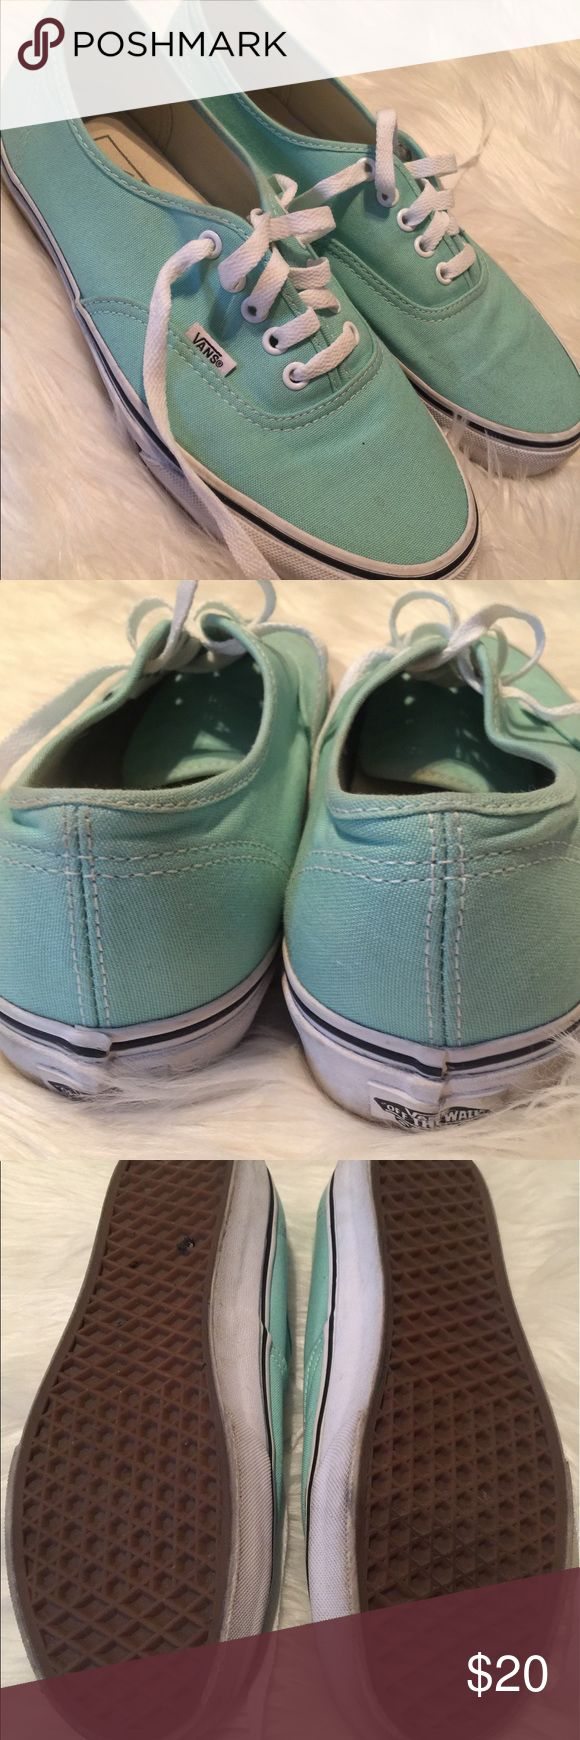 Mint green Vans Gently used mint green vans. Only worn twice. Moderate wear on soles. *MENS 8/WOMEN'S 9.5* Vans Shoes Sneakers